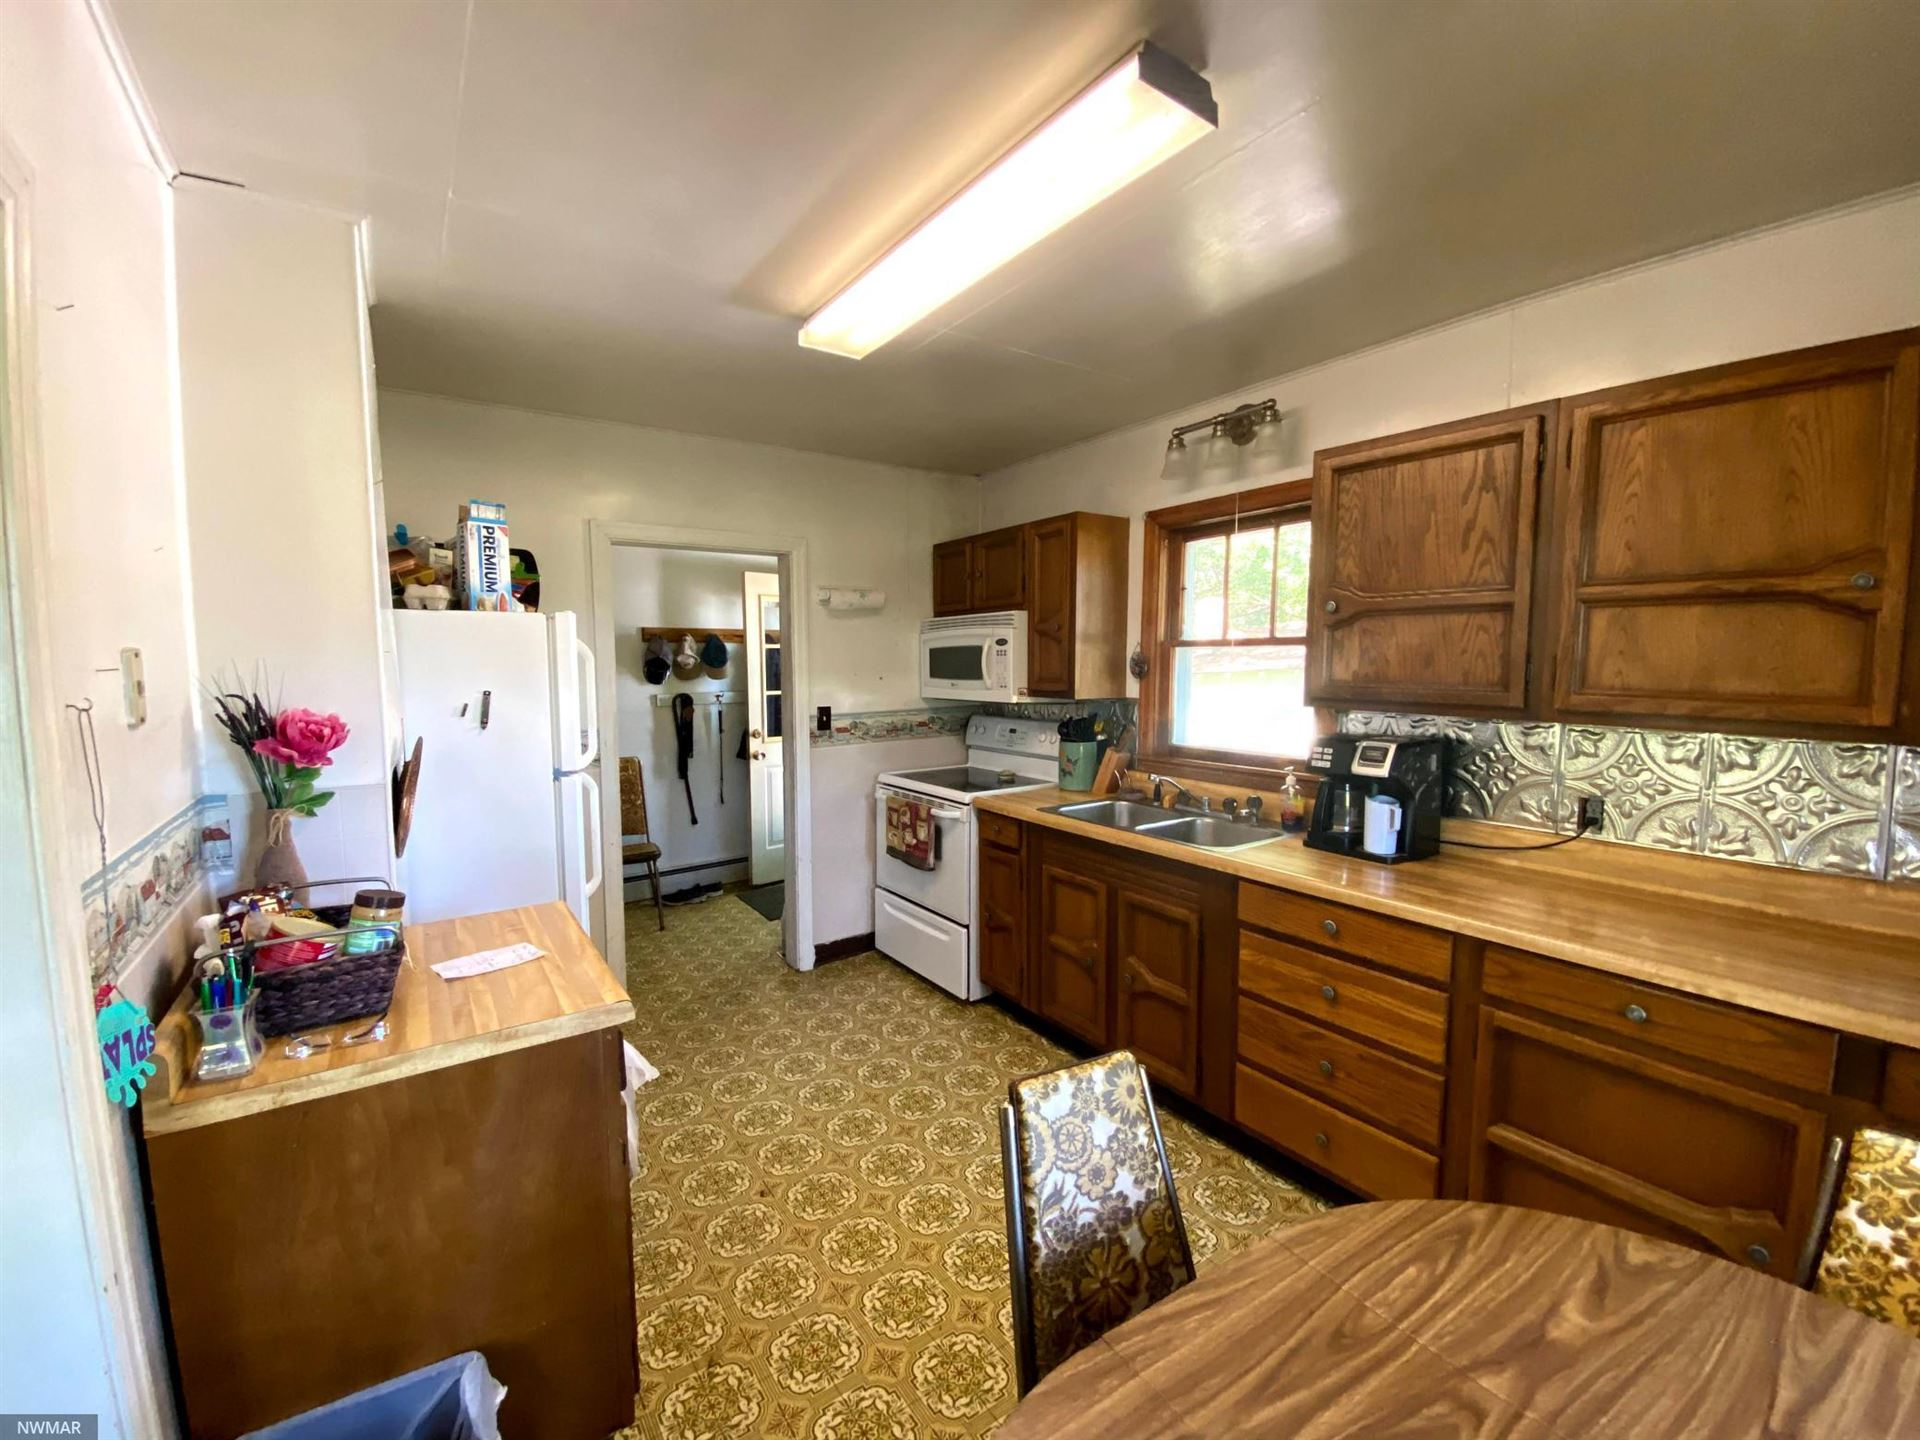 Photo of 48191 State 92, Clearbrook, MN 56634 (MLS # 5619997)